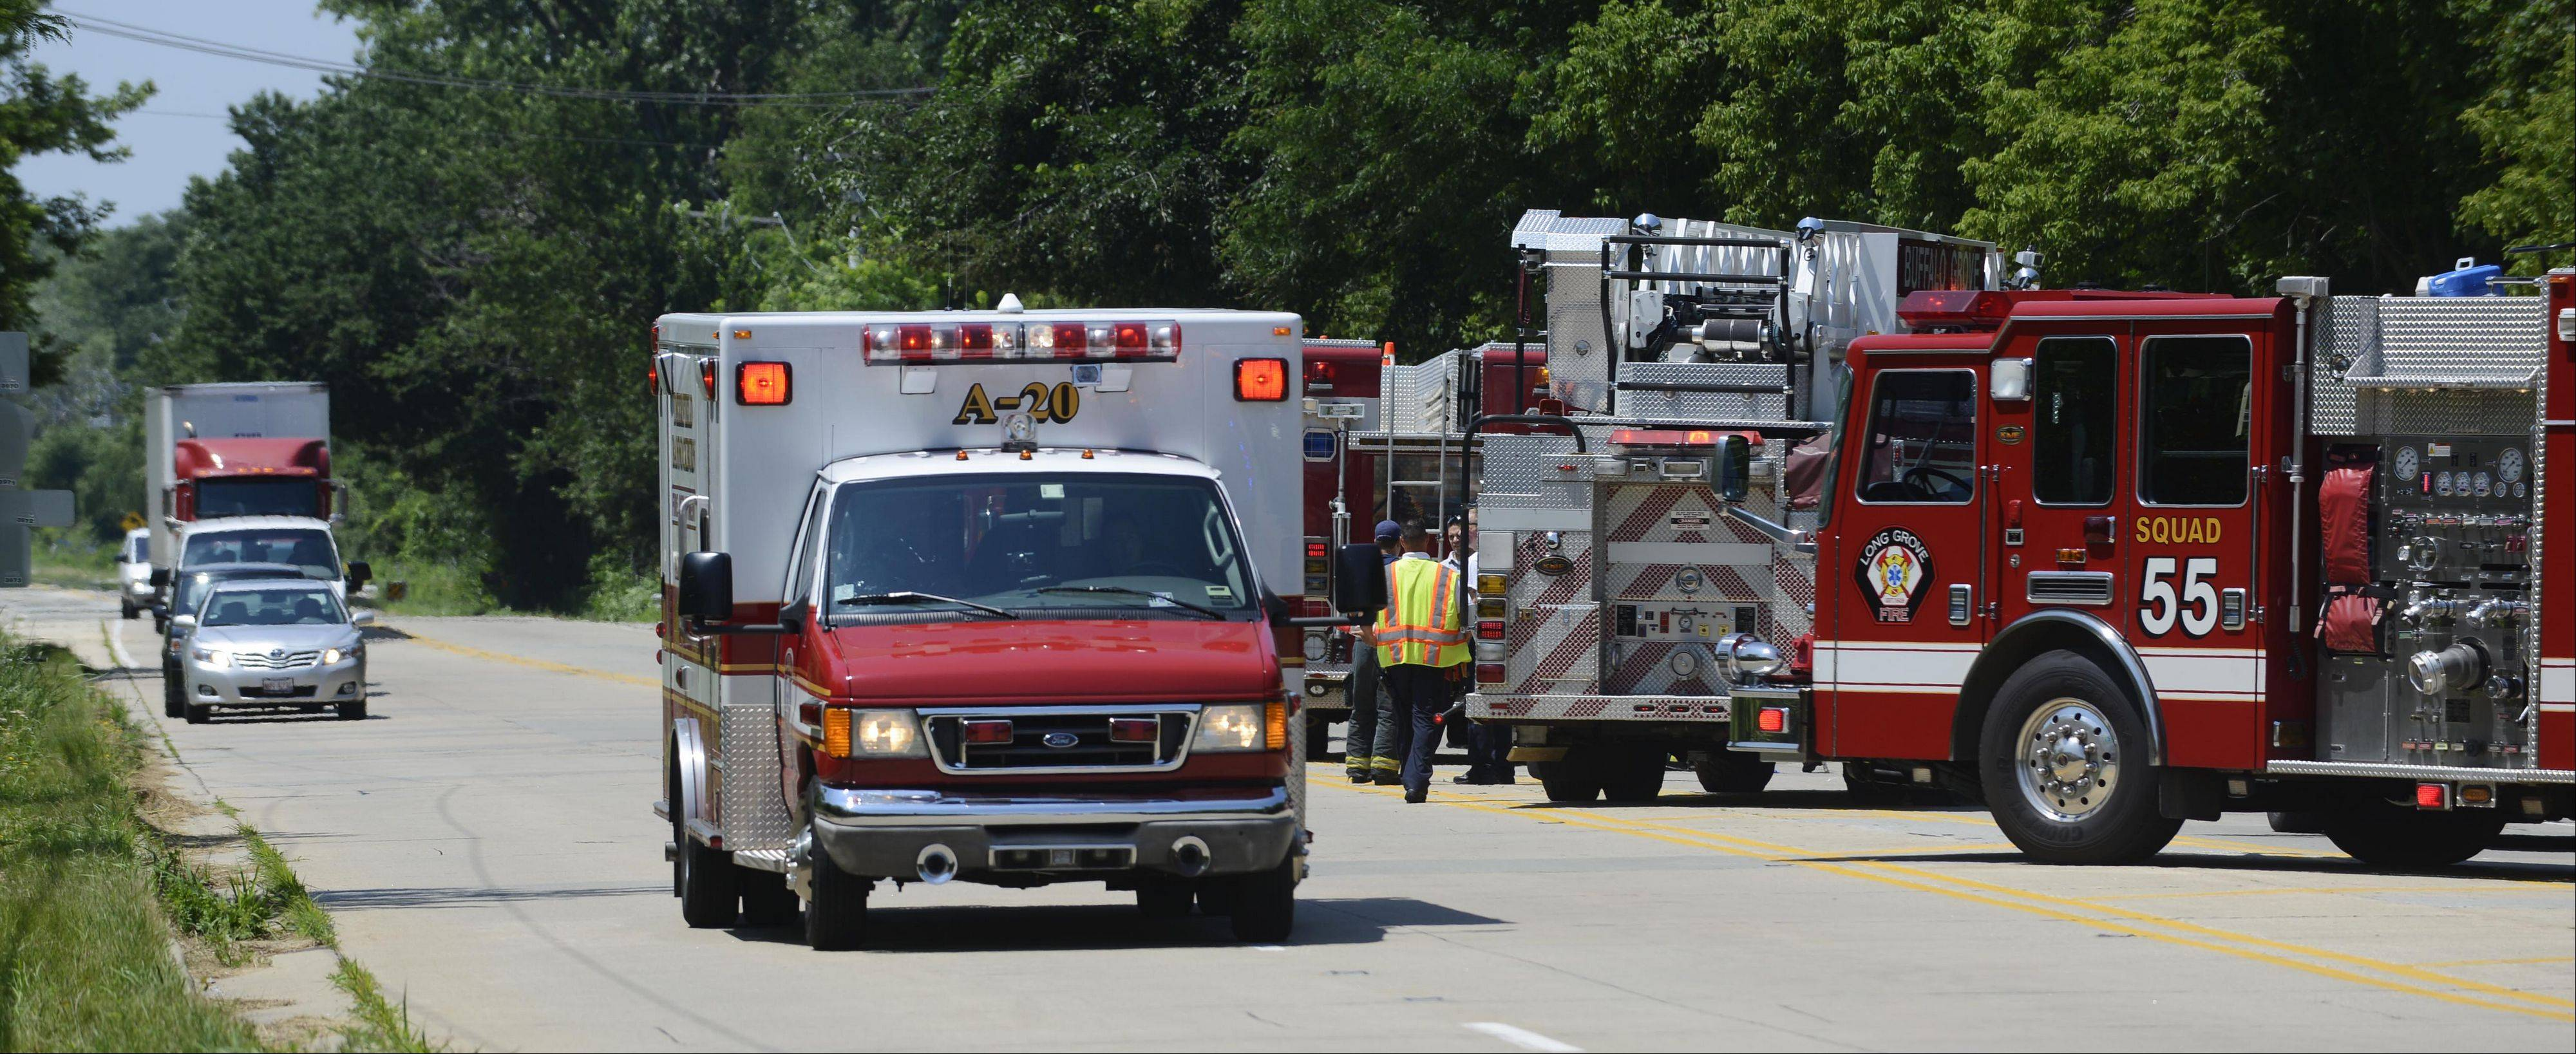 An ambulance departs the scene where two people were rescued Thursday from a 12-foot-deep manhole in Long Grove.